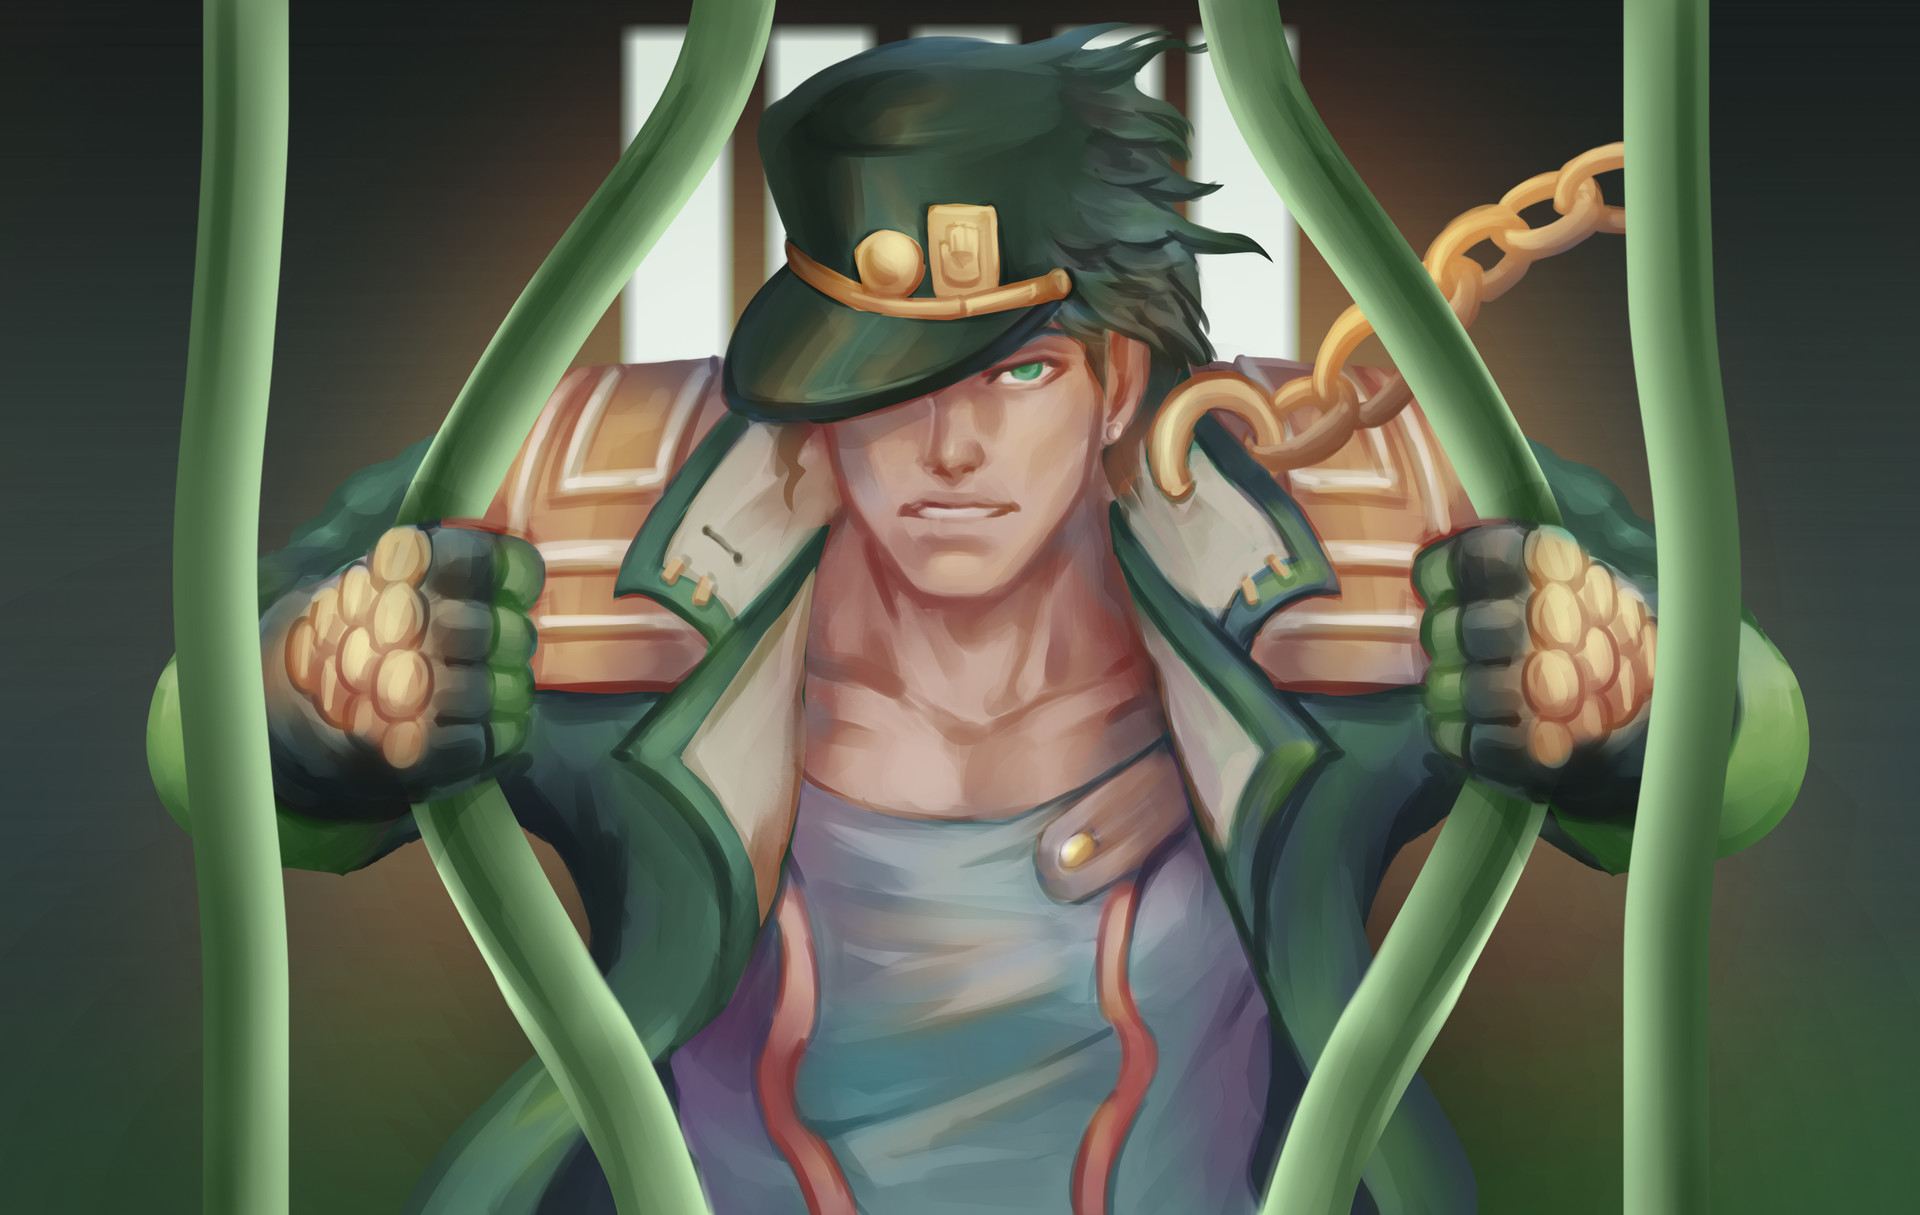 ArtStation - Jotaro Kujo fan art, Wong Yinyi